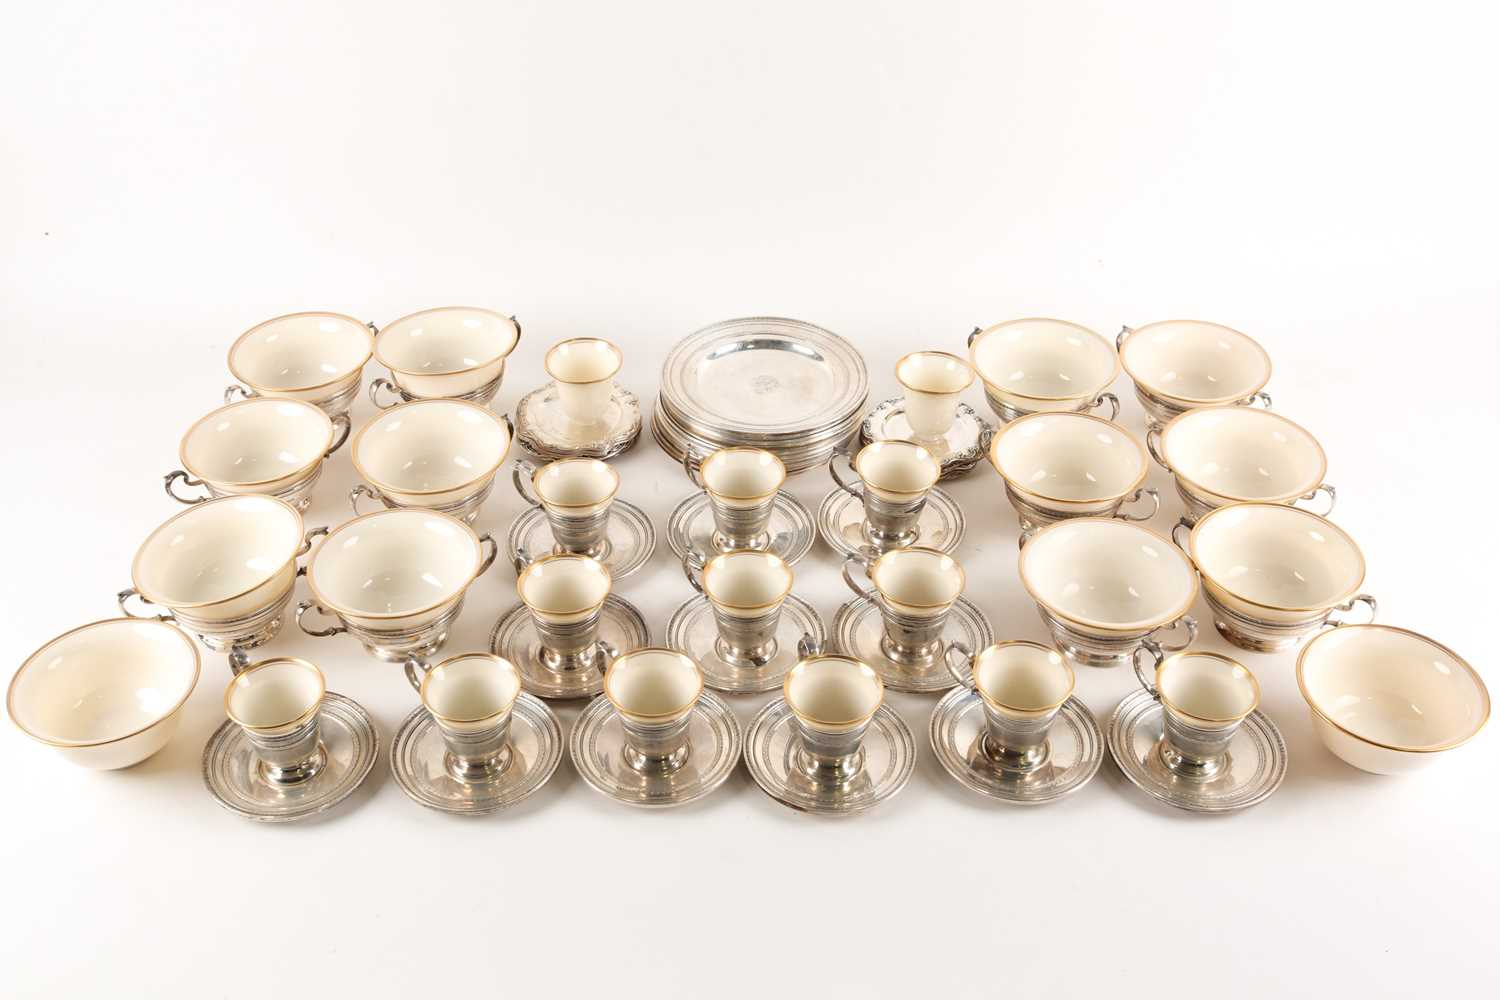 A Lenox Porcelain coffee and dessert service, set in Gorham Sterling Silver mounts, comprising